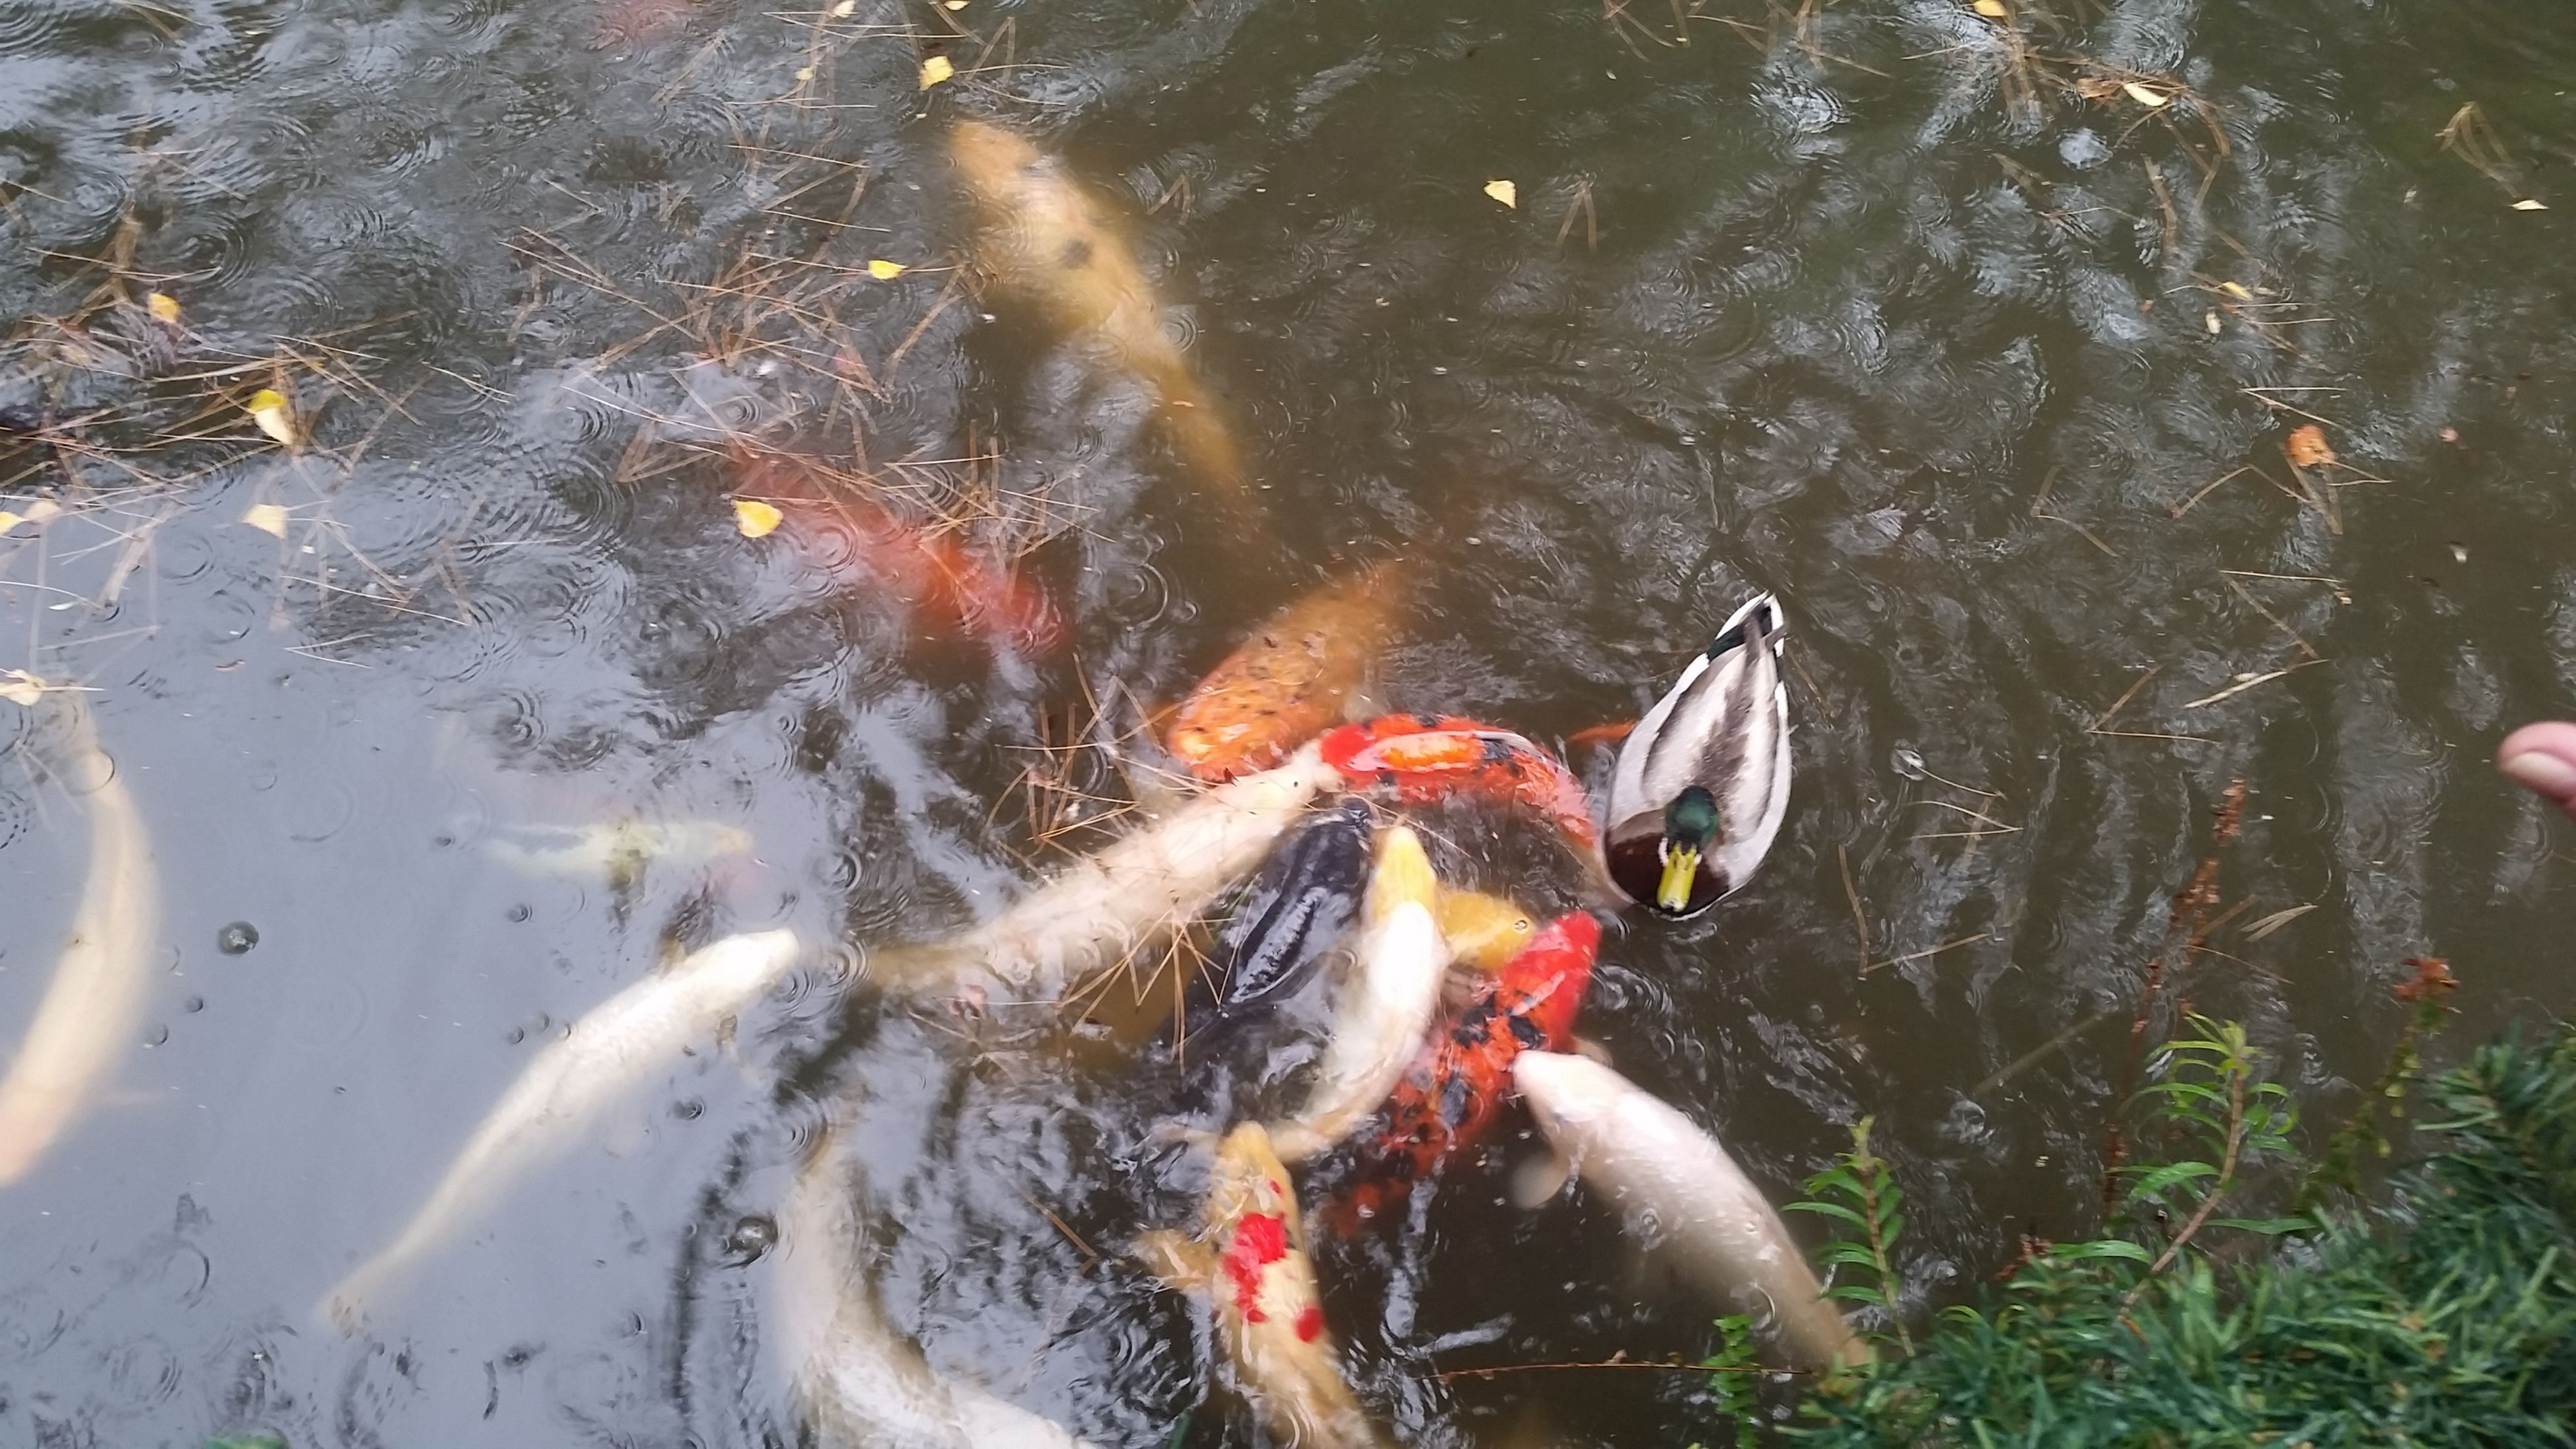 animal themes, water, swimming, animals in the wild, high angle view, wildlife, lake, one animal, duck, bird, pond, nature, waterfront, reflection, two animals, day, outdoors, fish, pets, domestic animals